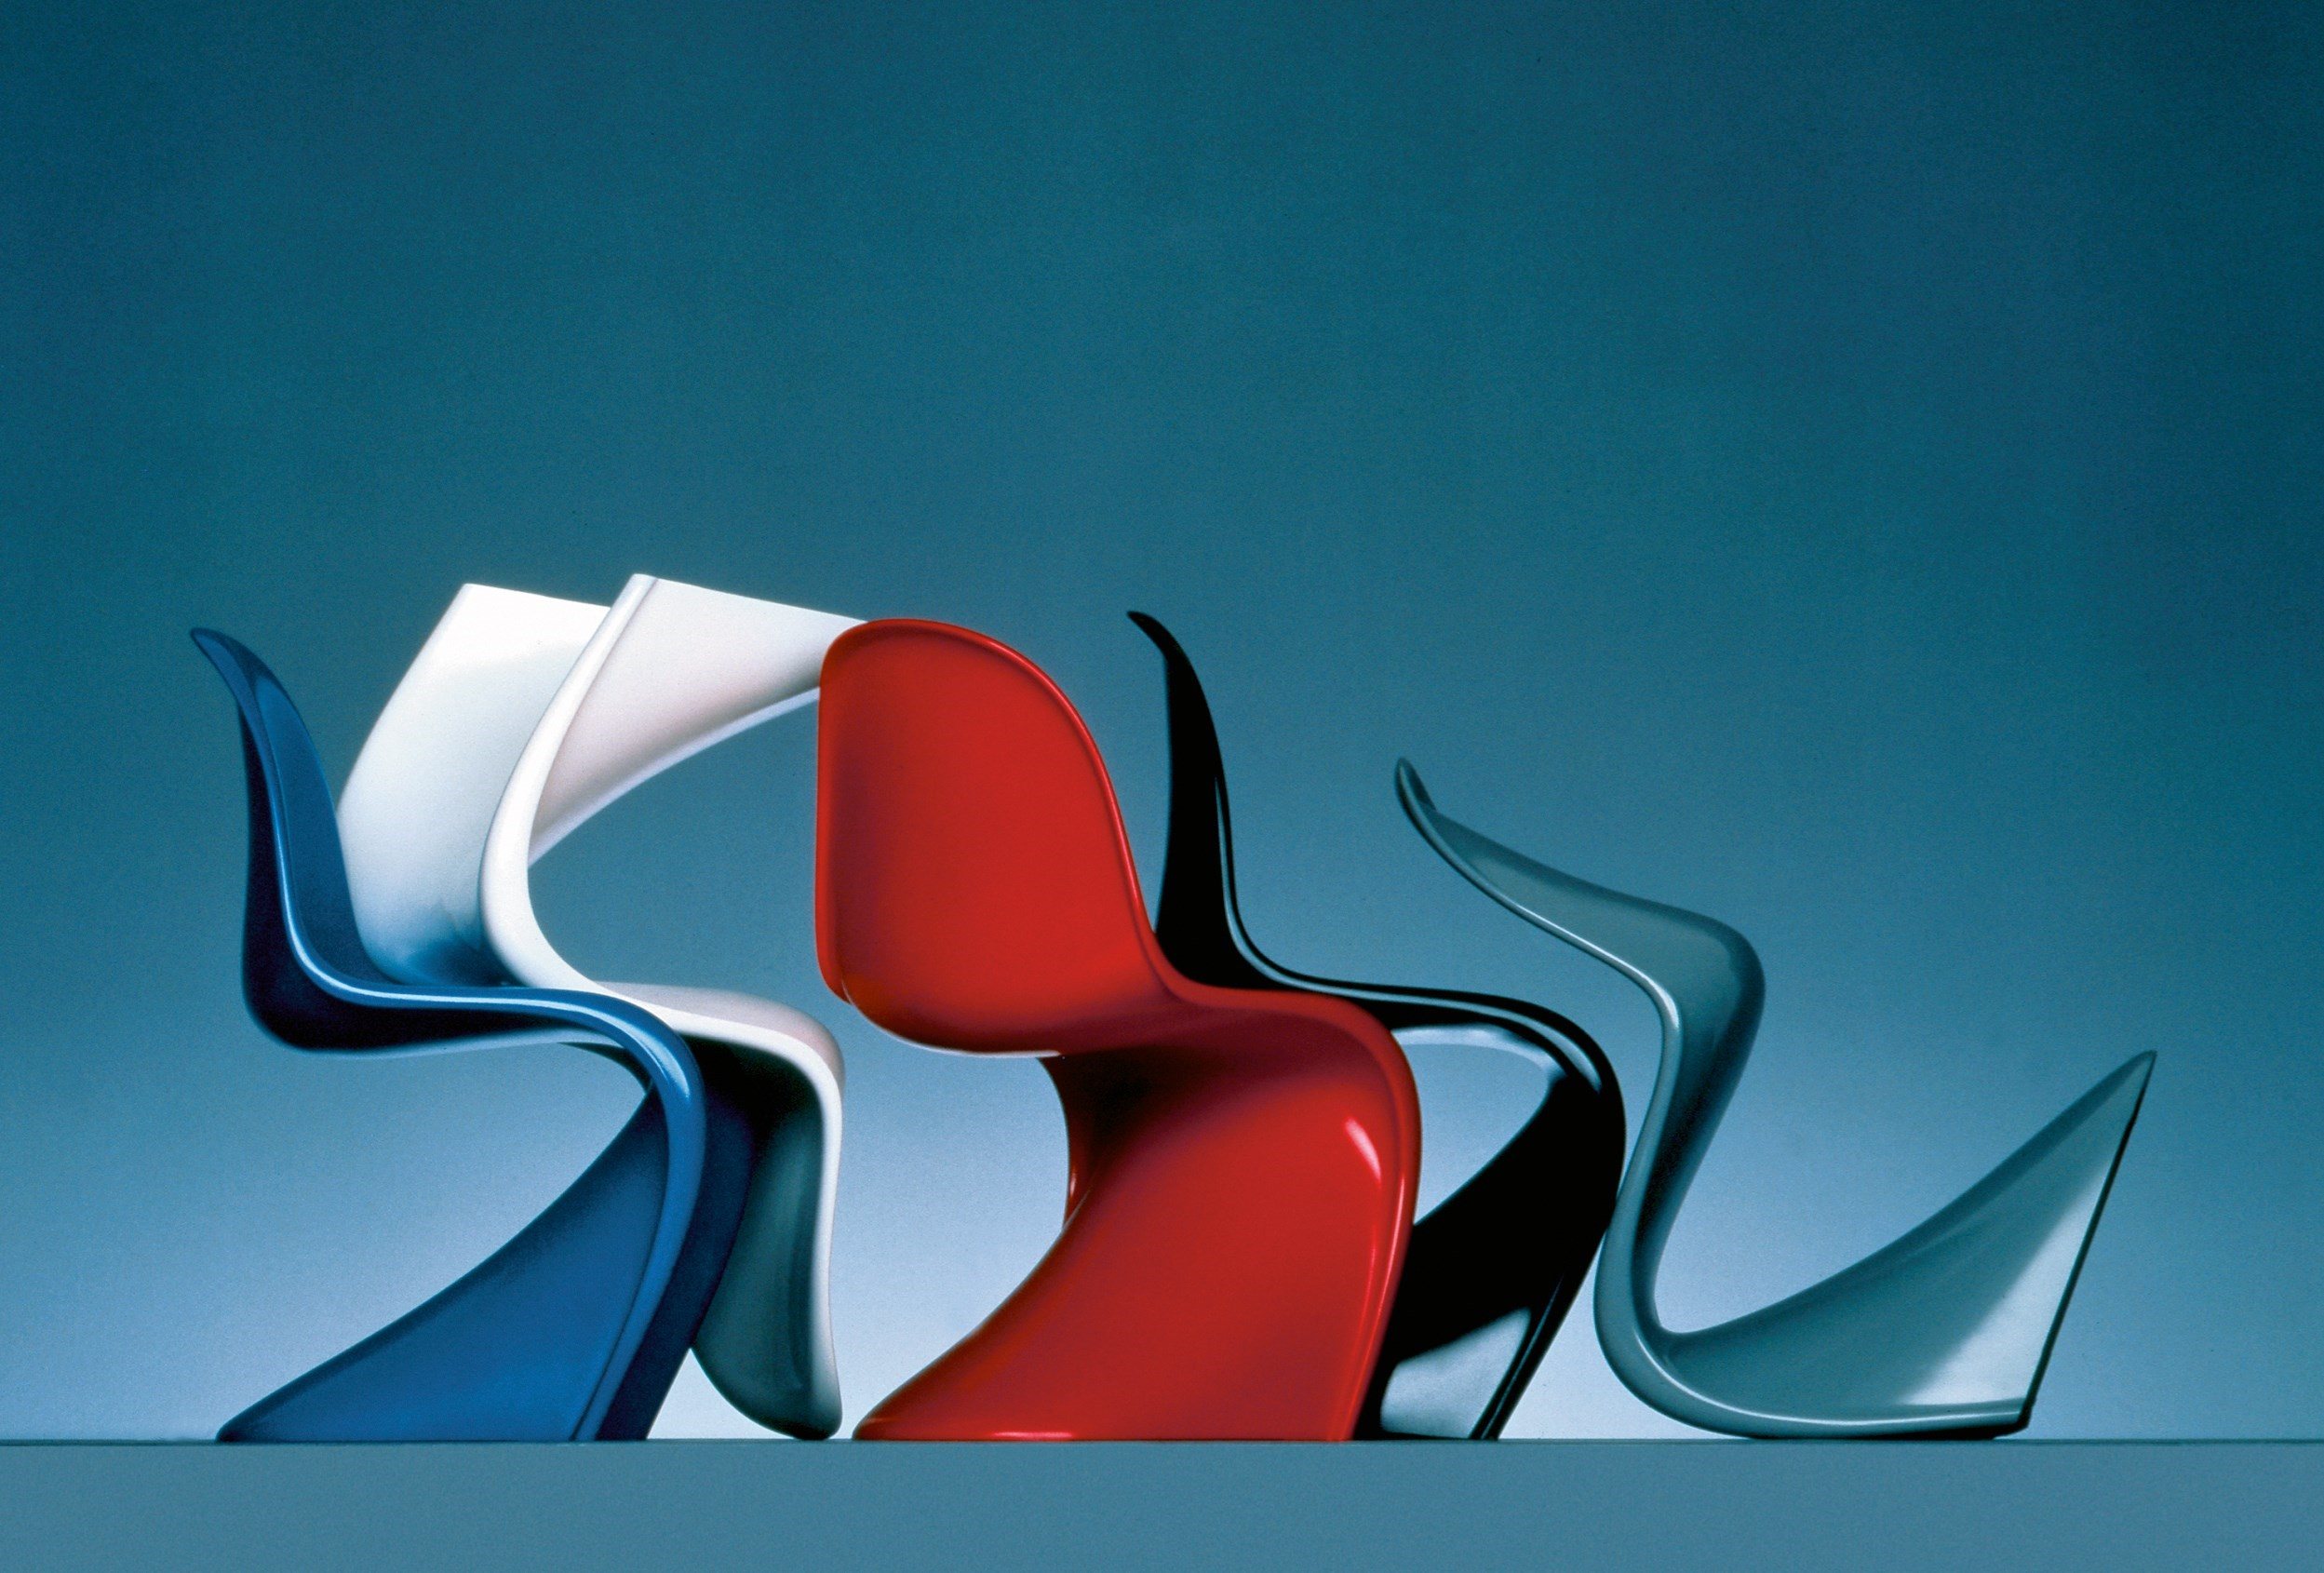 How Verner Panton Changed the Way the World Sees Furniture Design | AnOther